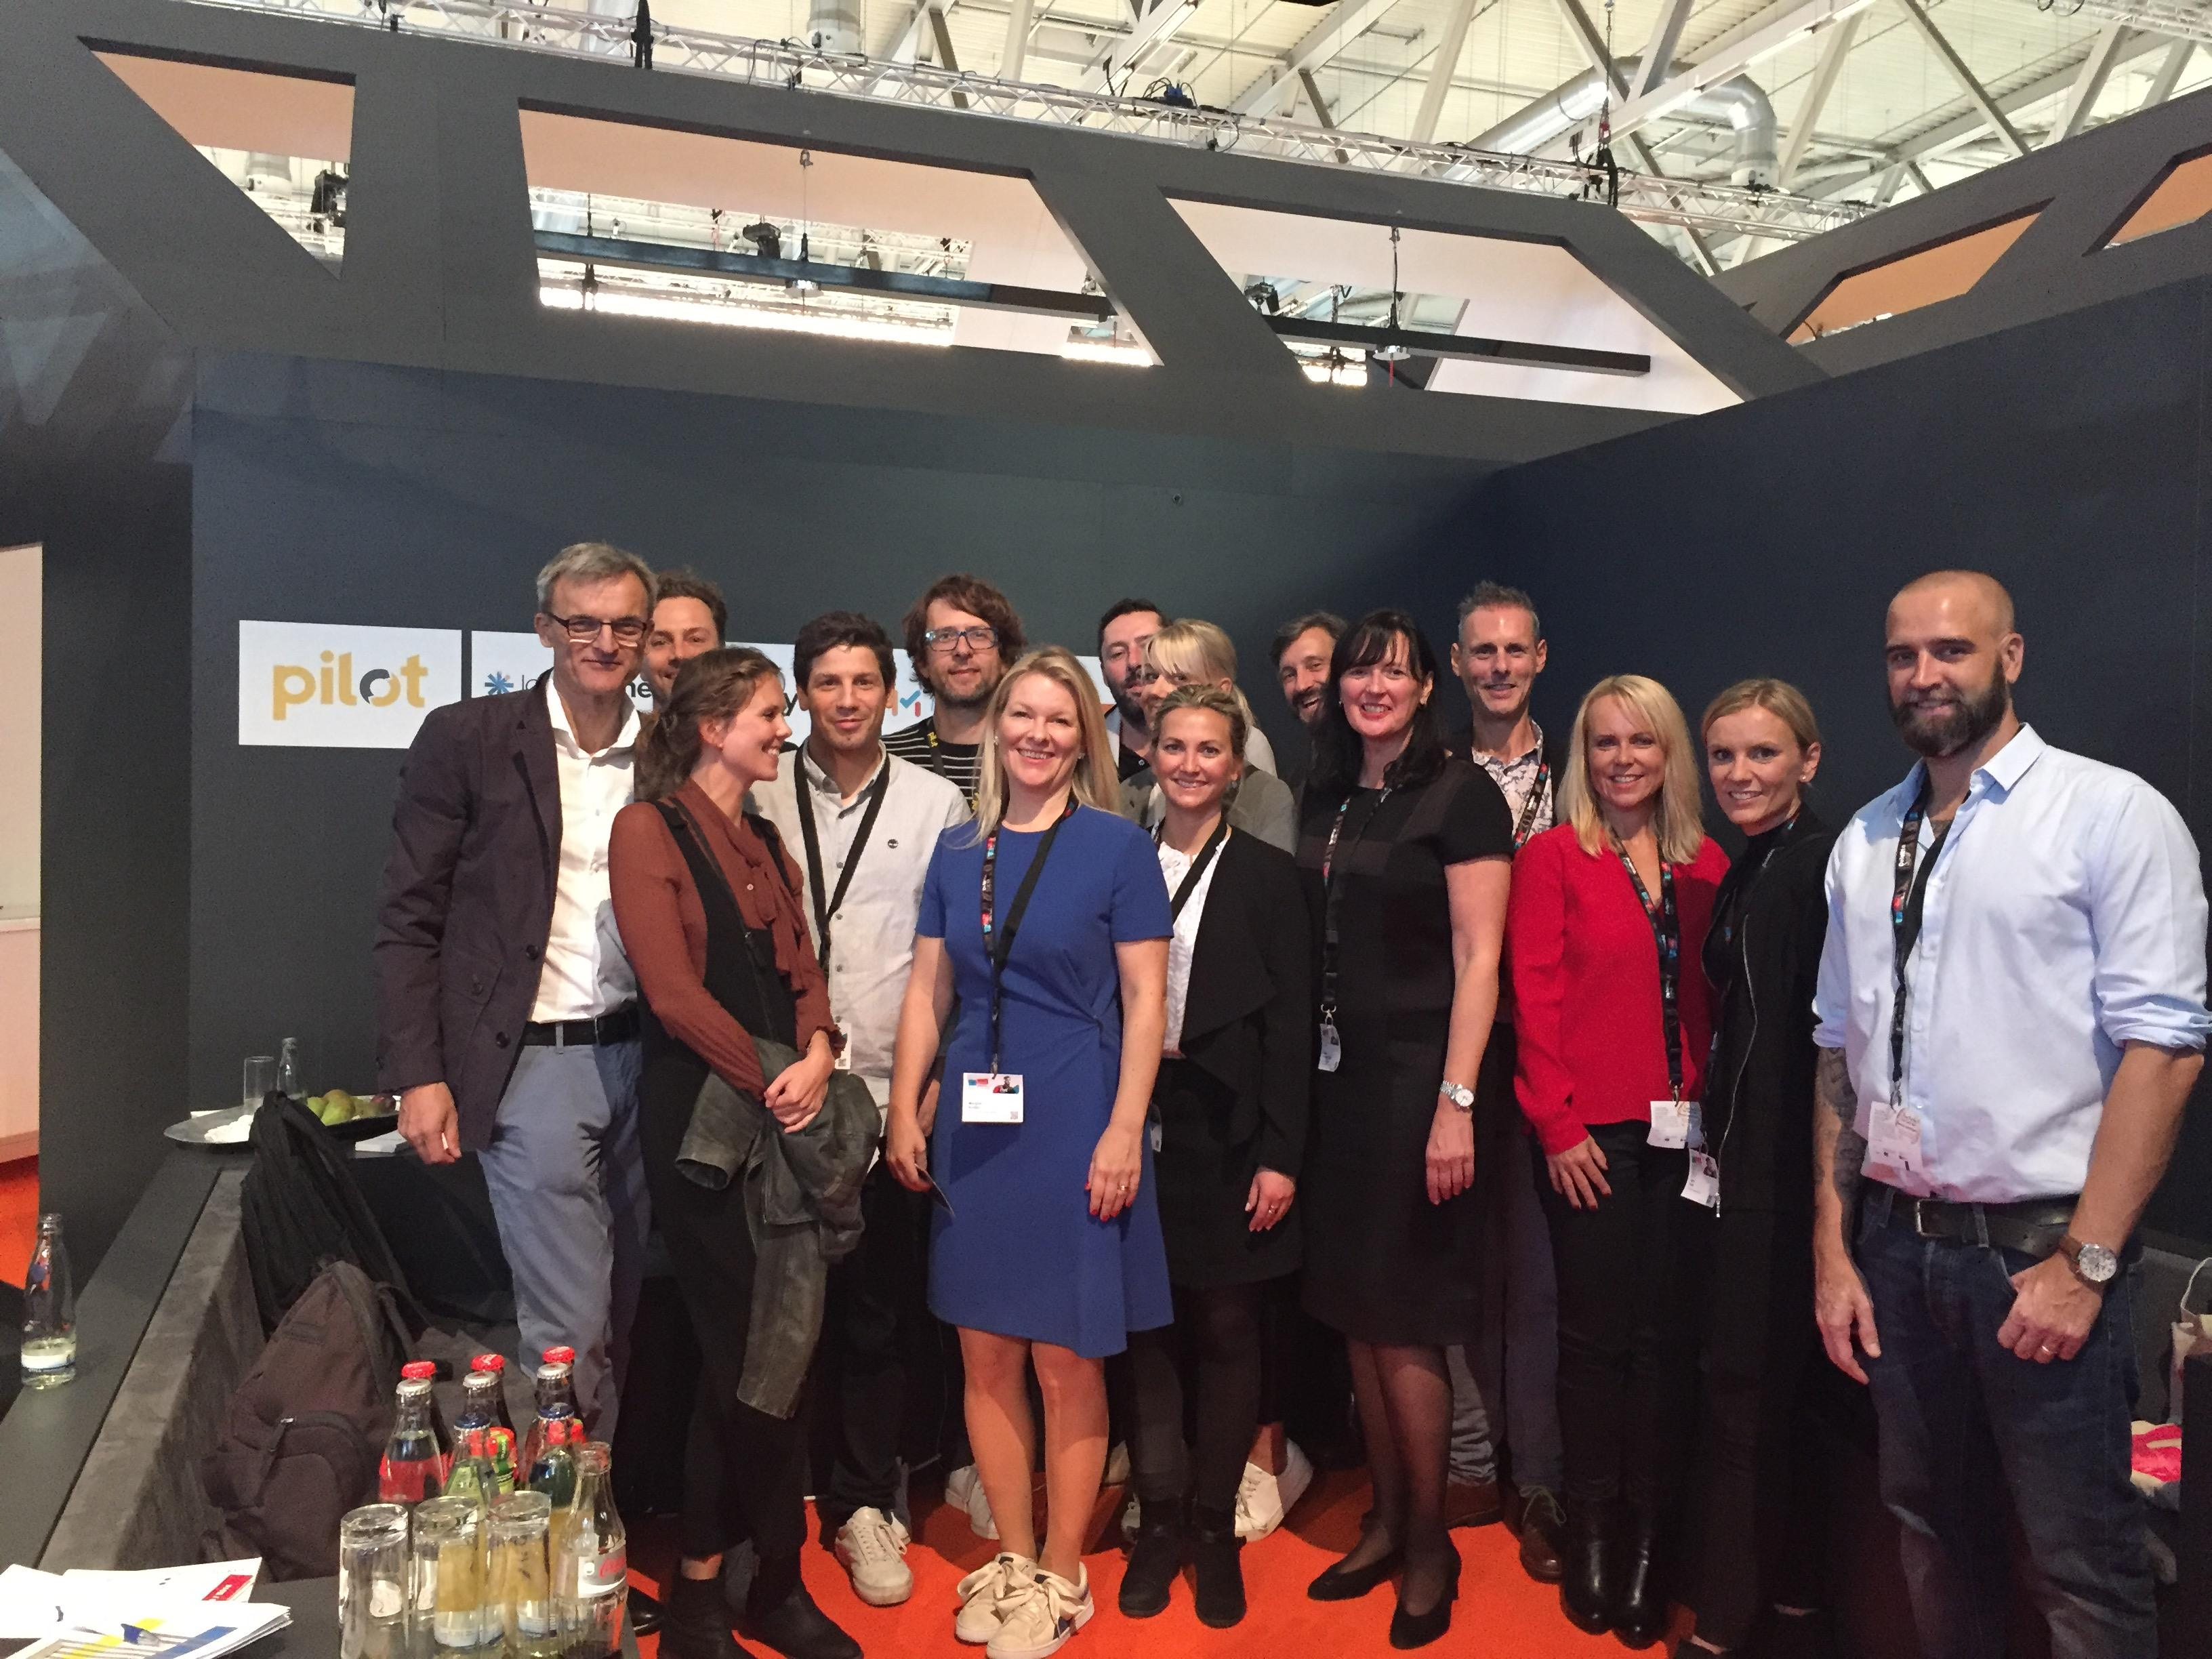 BEO BCMA DACH Get together pilot dmexco 2017